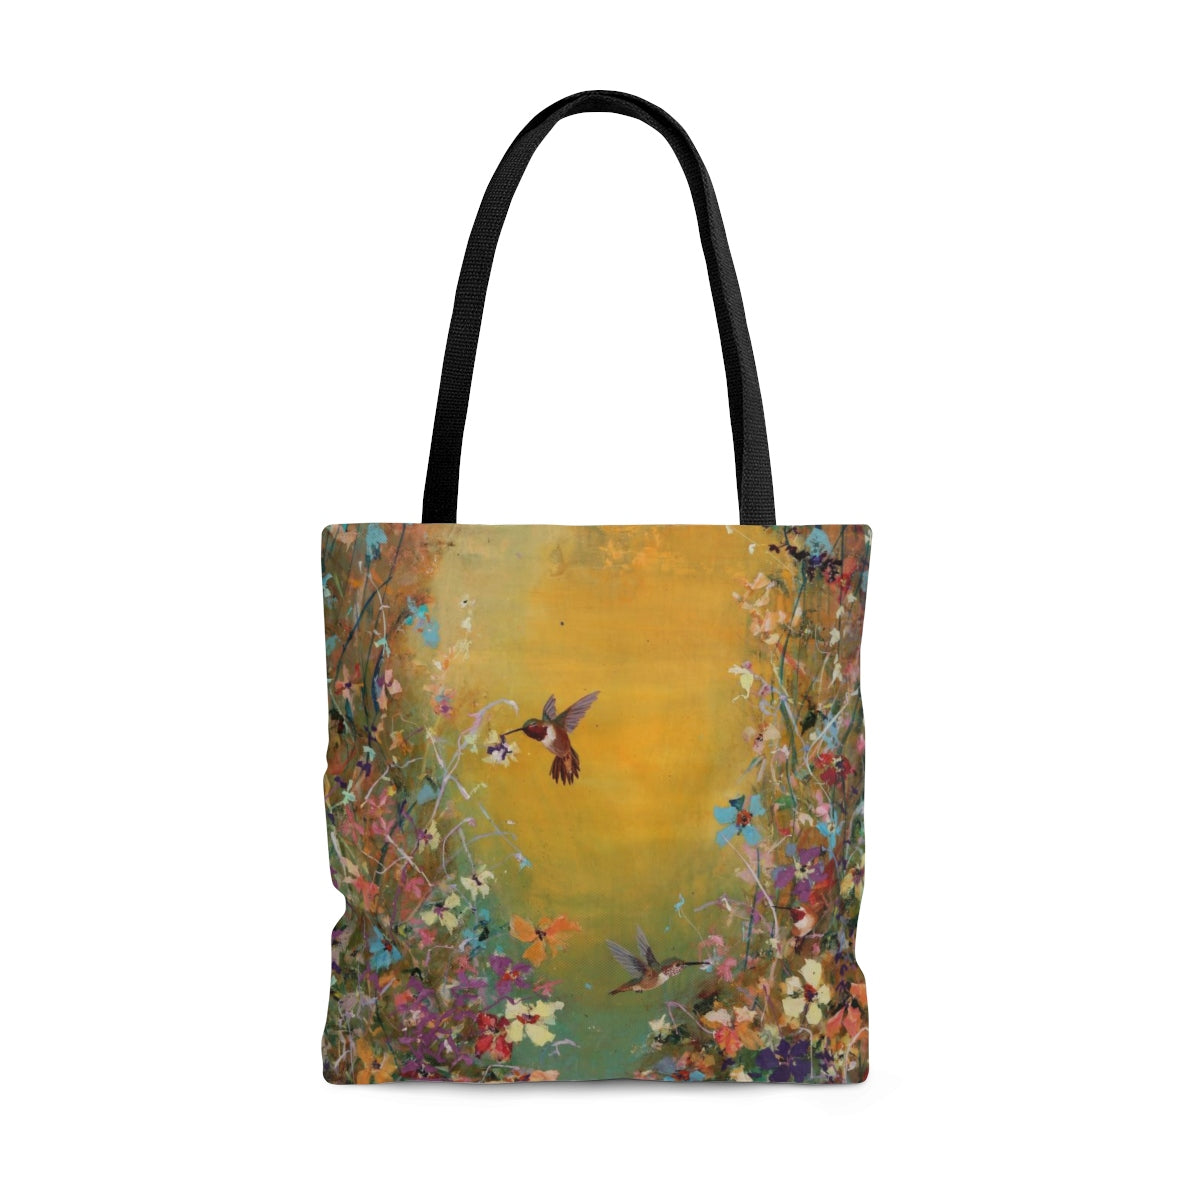 Wonderland Family - Tote Bag